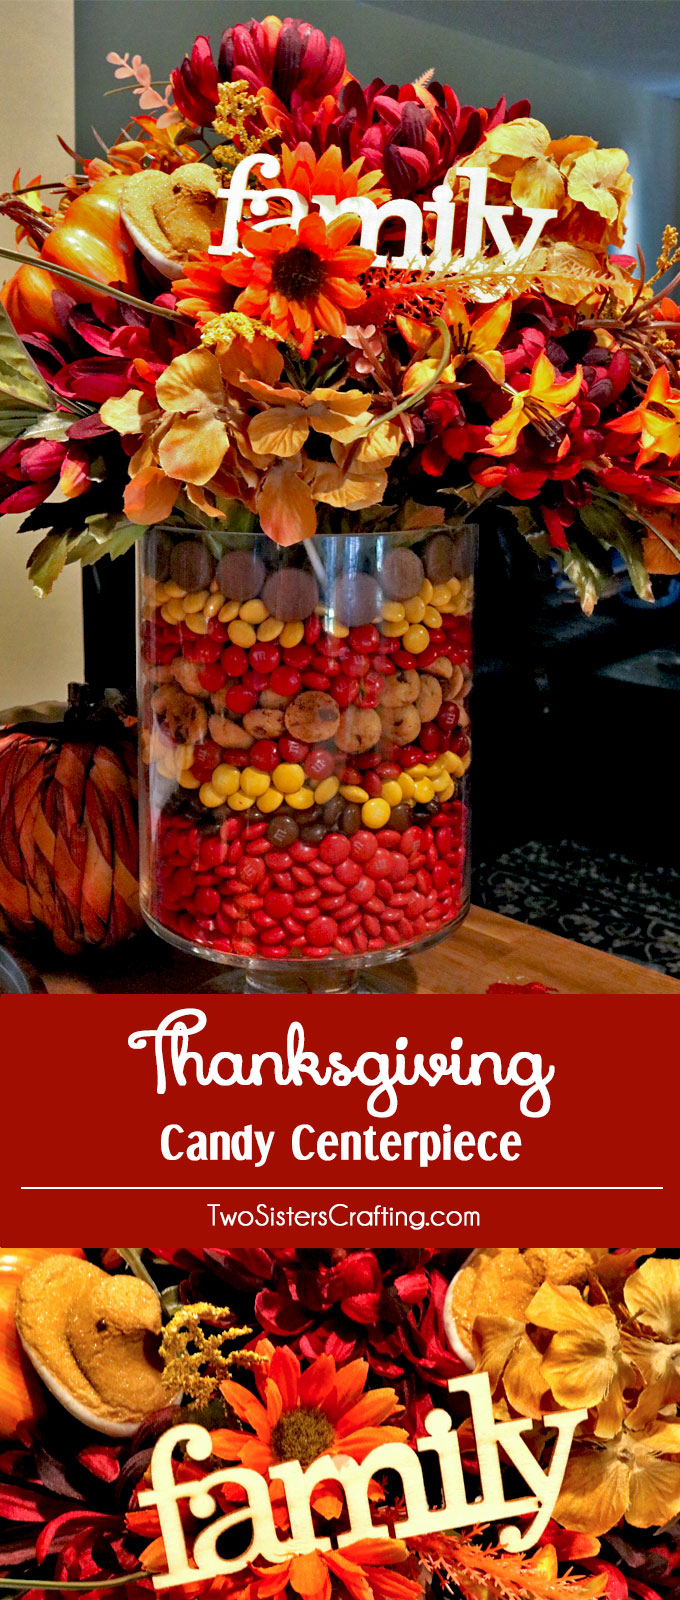 Thanksgiving Candy Centerpiece - this adorable Fall Centerpiece will be everyone's favorite Thanksgiving decoration - so fun and so easy to make. All you need are M&M's, Peeps and some flowers to make this cute Thanksgiving Craft. Follow us for more fun Thanksgiving Dinner table ideas.